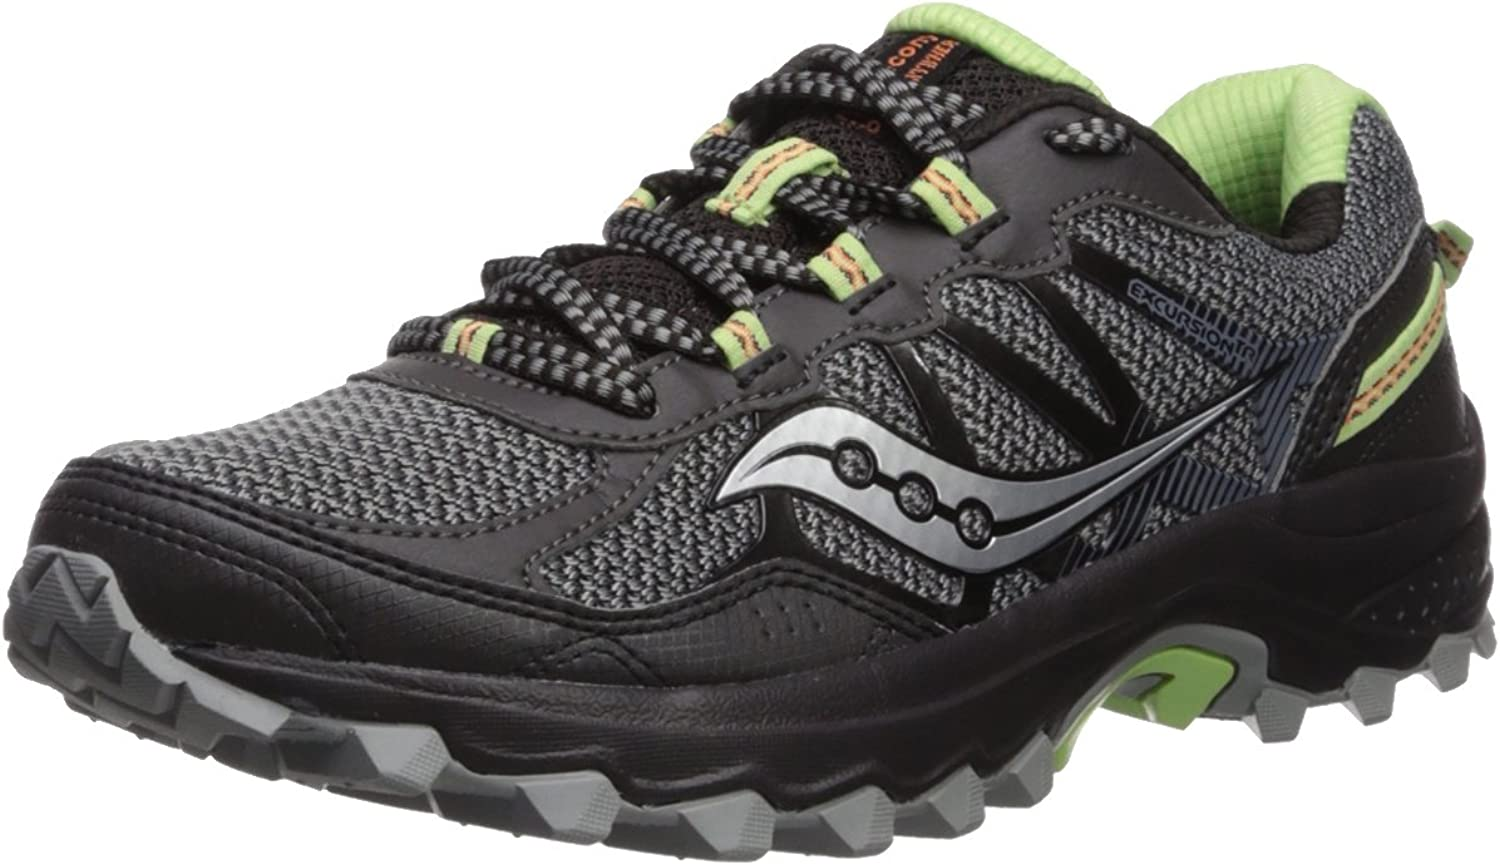 Saucony Women's Excursion TR11 Running shoes Charcoal